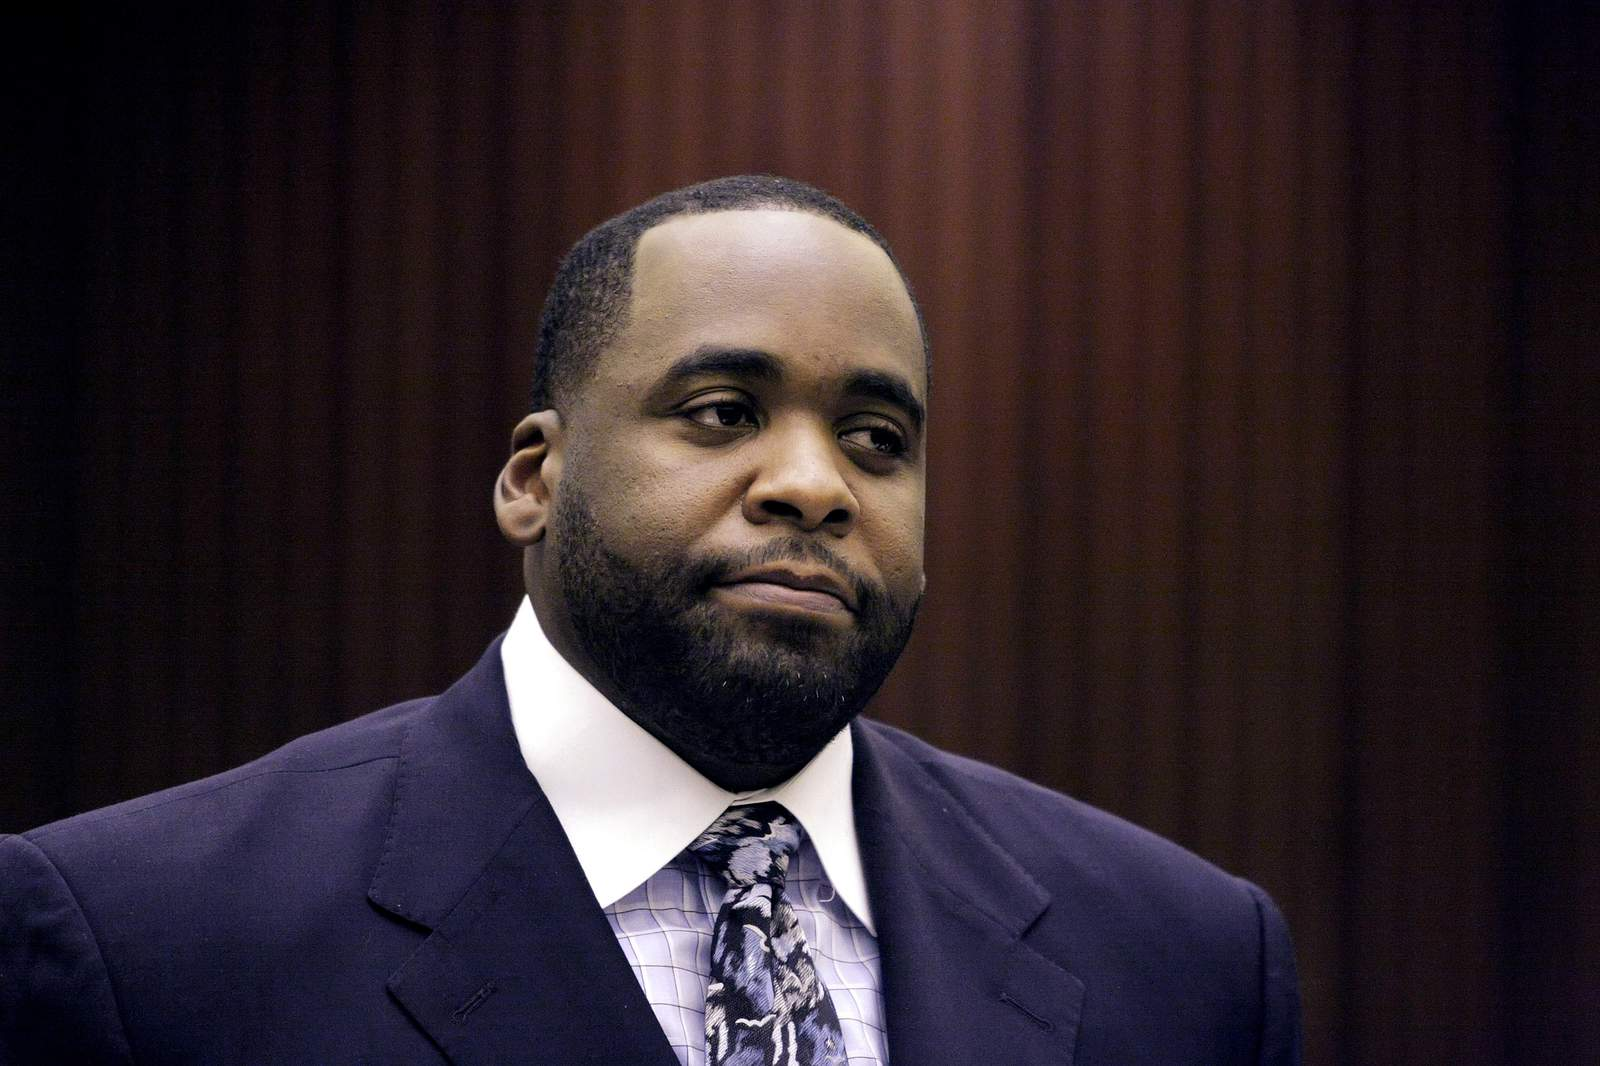 Kwame Kilpatrick: Heres everything we know